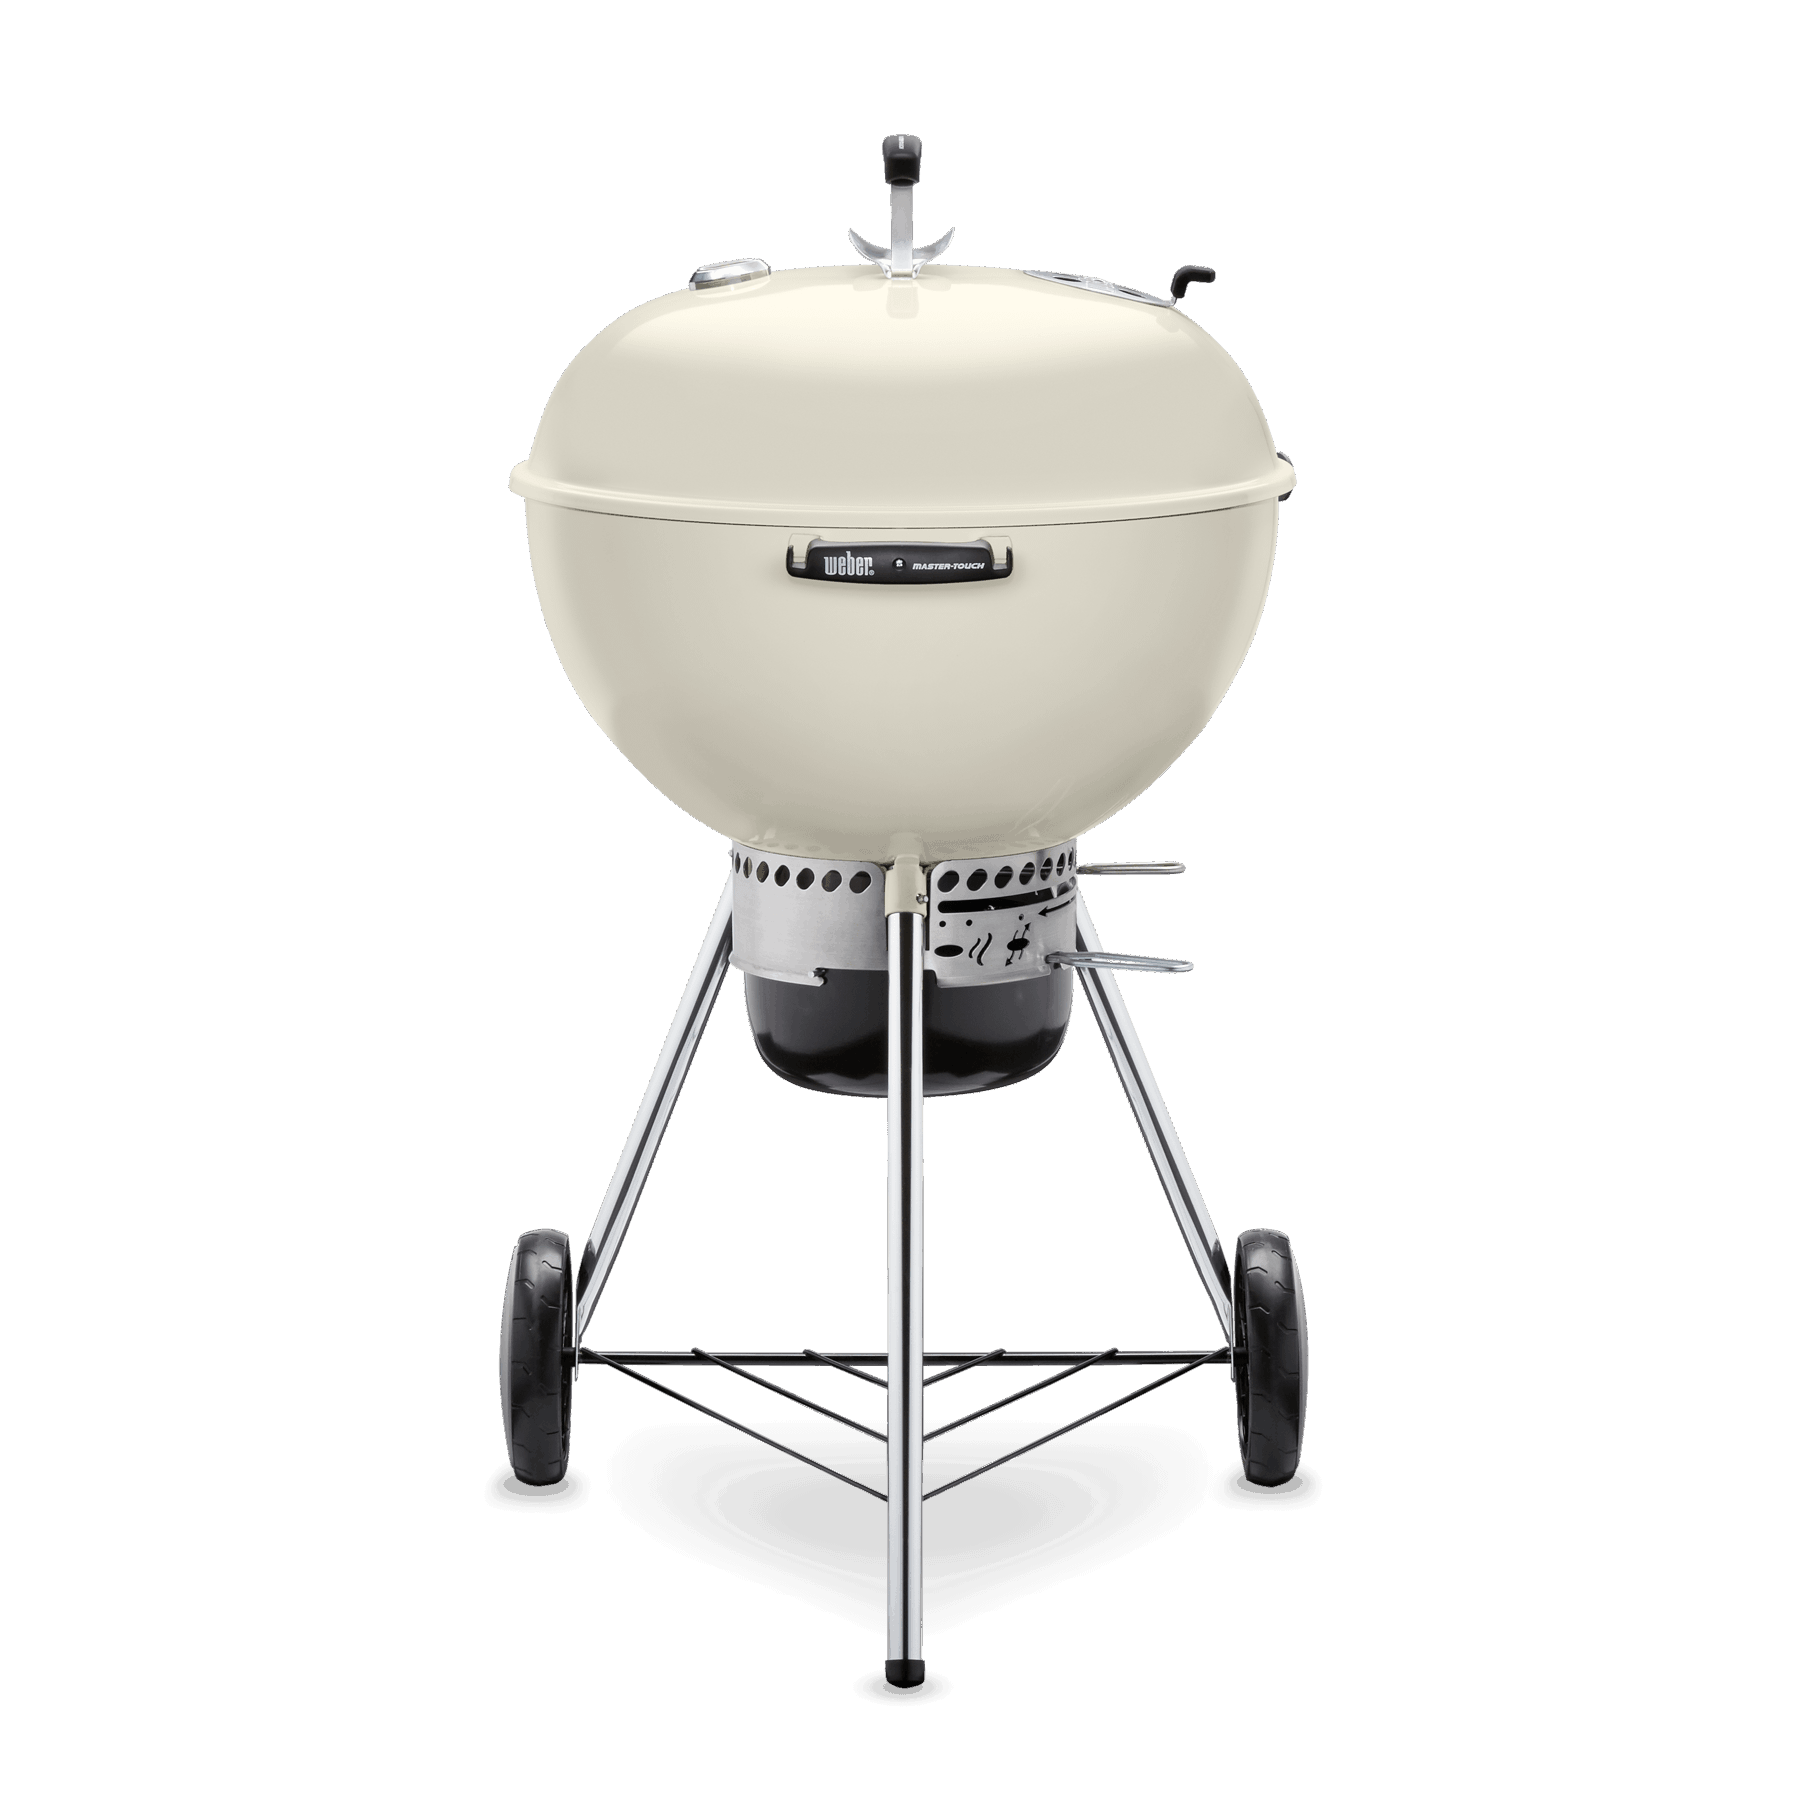 Charcoal Grill Weber Grills In 2020 Charcoal Grill Weber Grill Grilling